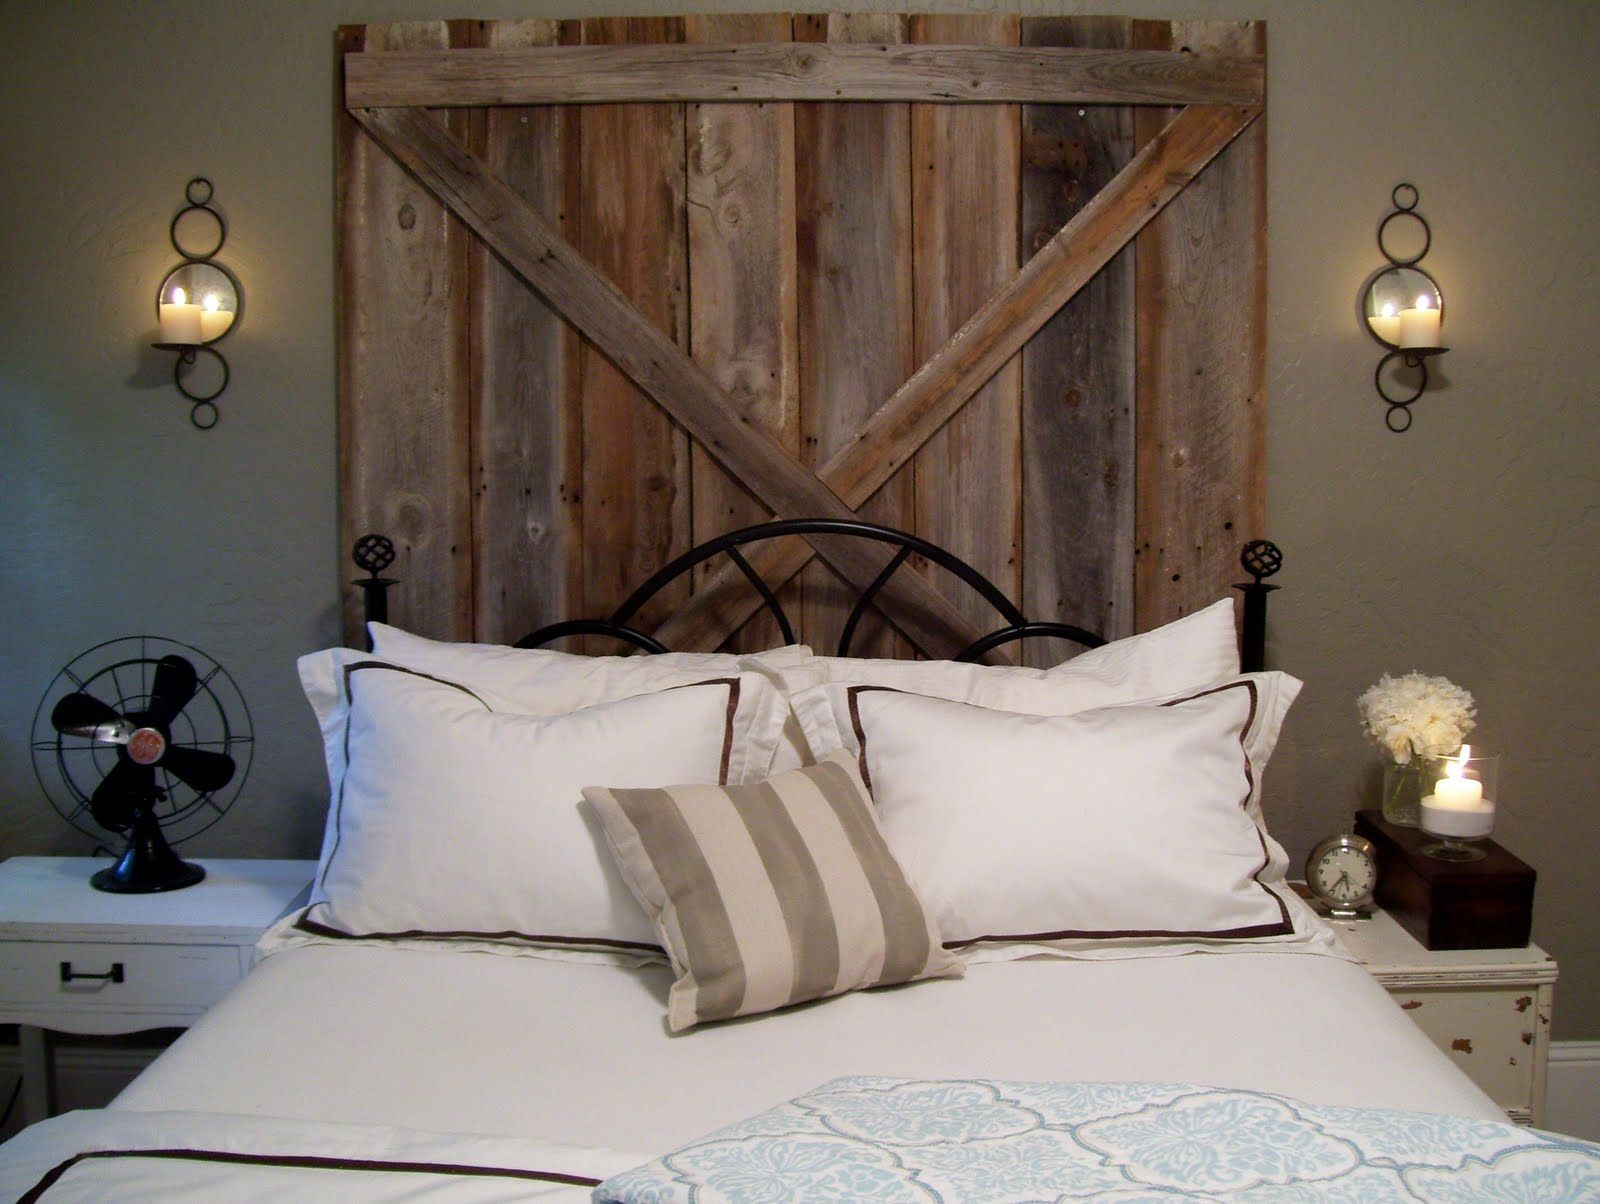 Amazing Bedroom DIYu0027s: Ten DIY Headboards